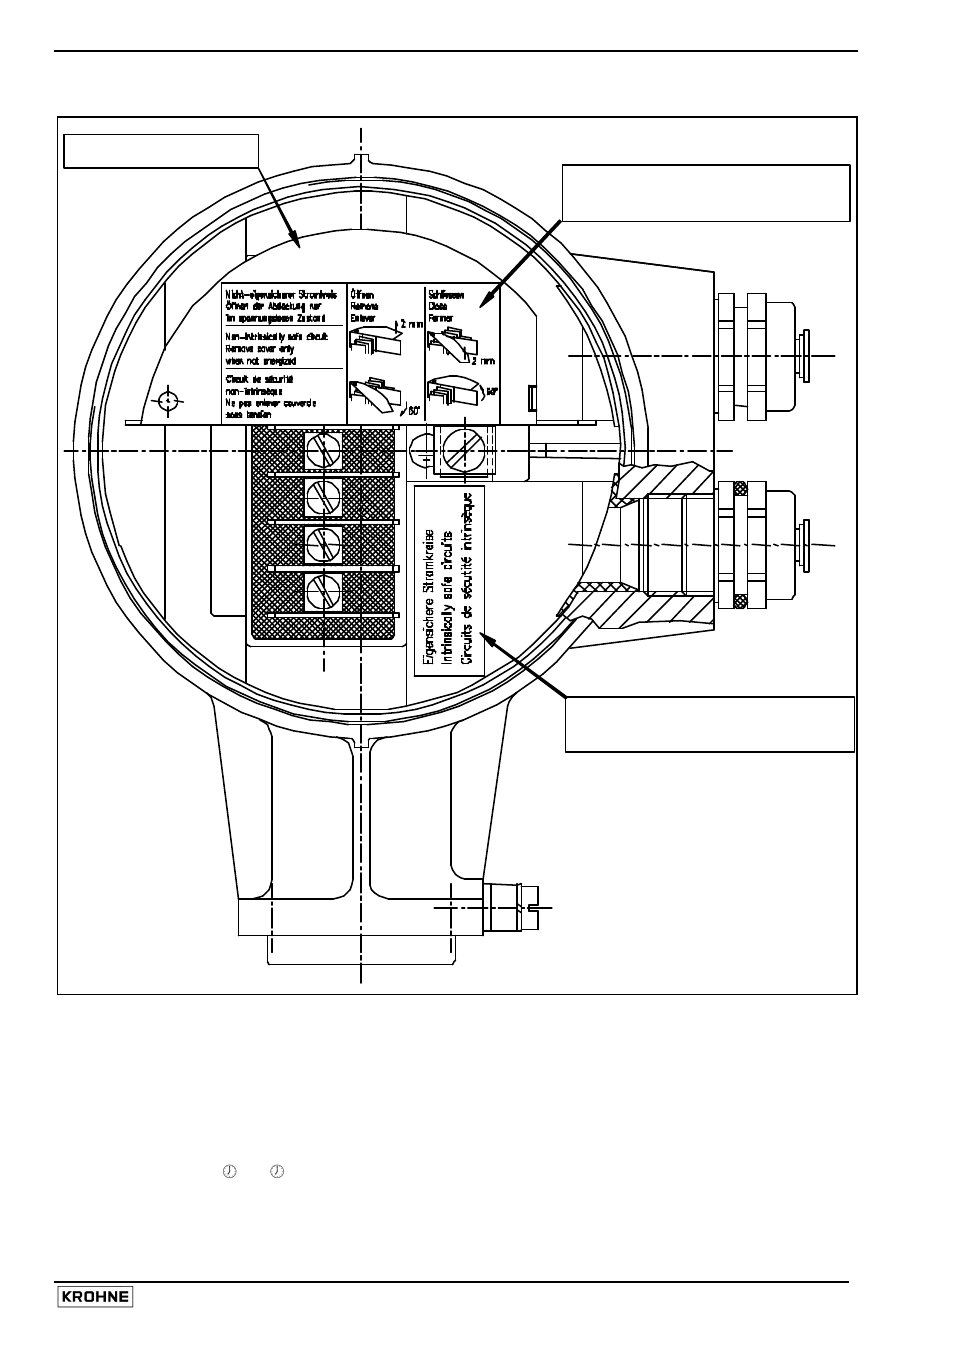 Krohne Magnetic Flow Meter Wiring Diagram